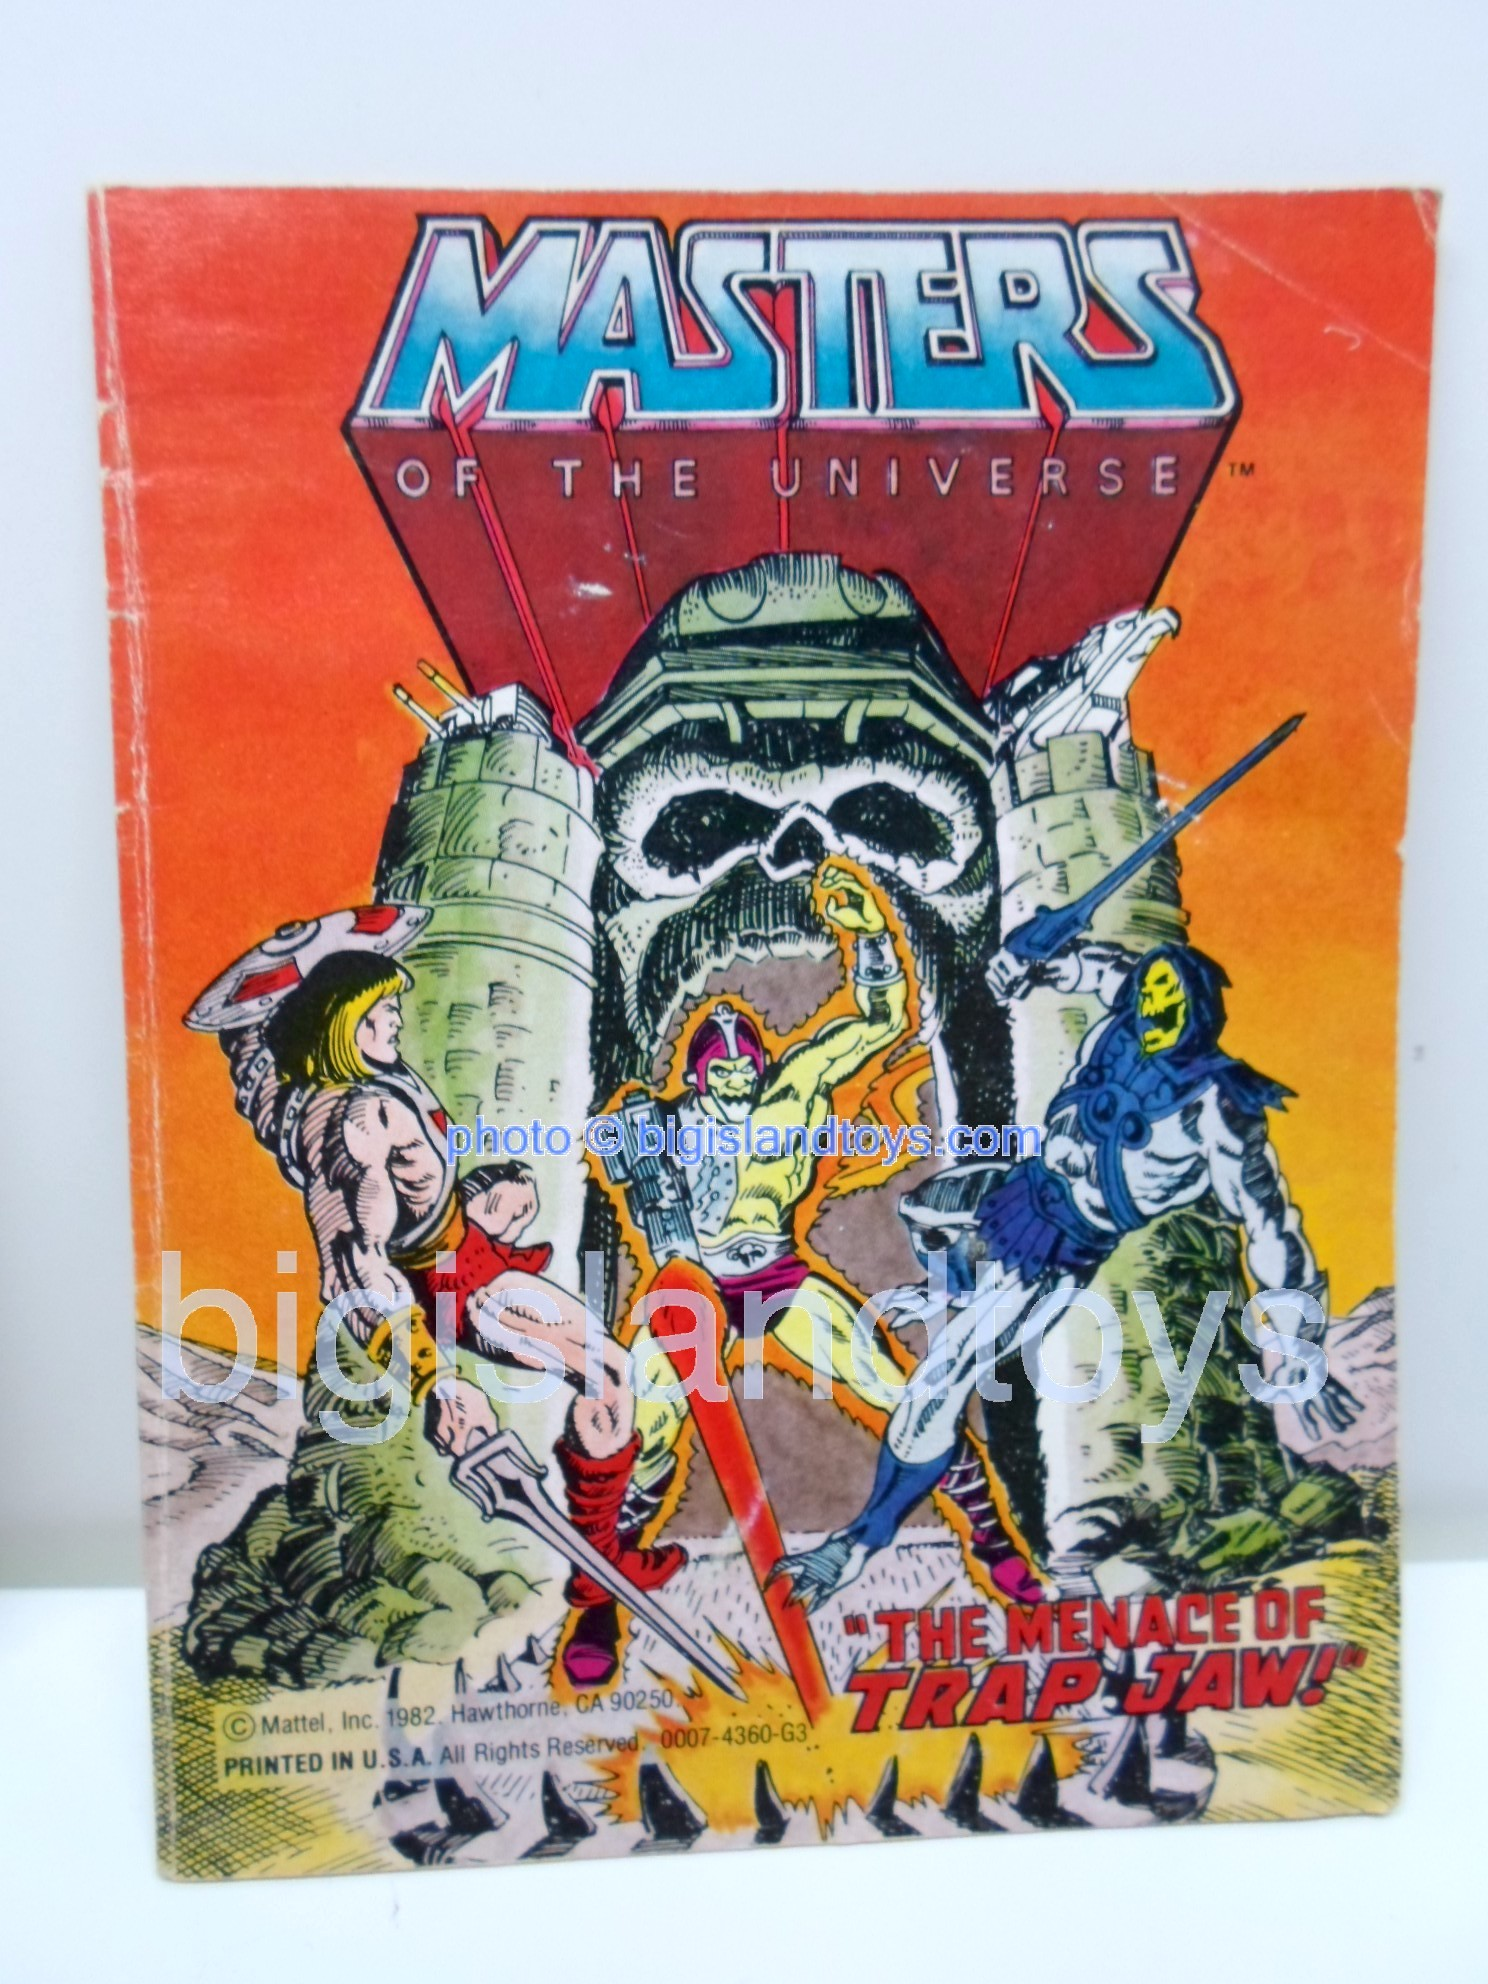 Masters of the Universe Mini Comics   The Menace of Trap Jaw!